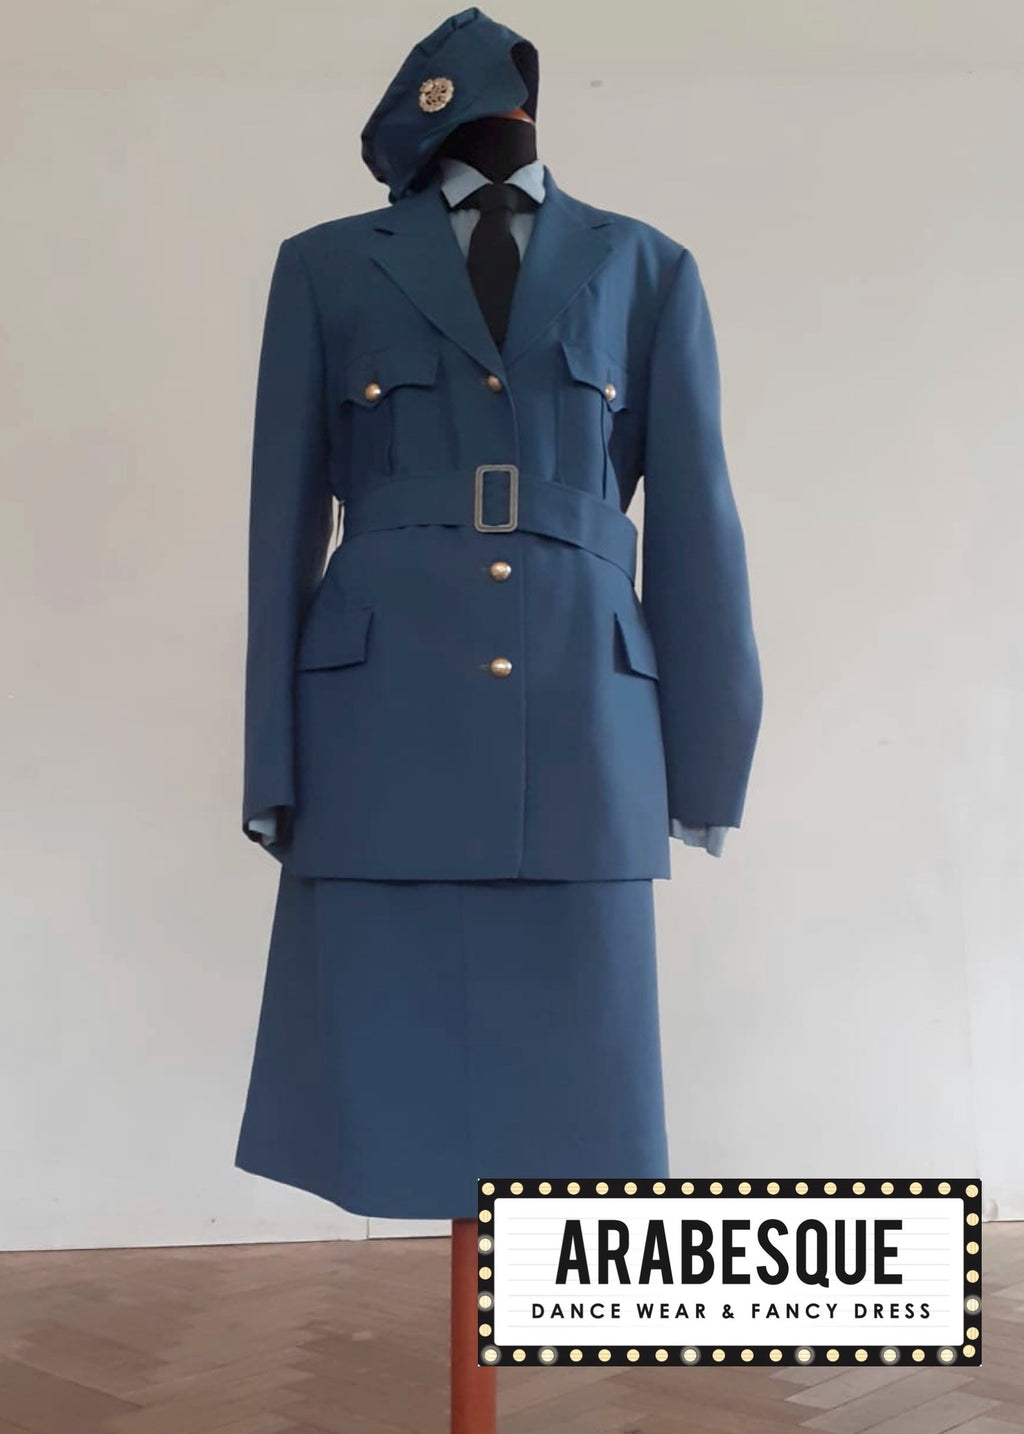 Ladies WAFF Uniform (Womens Auxiliary Air Force)